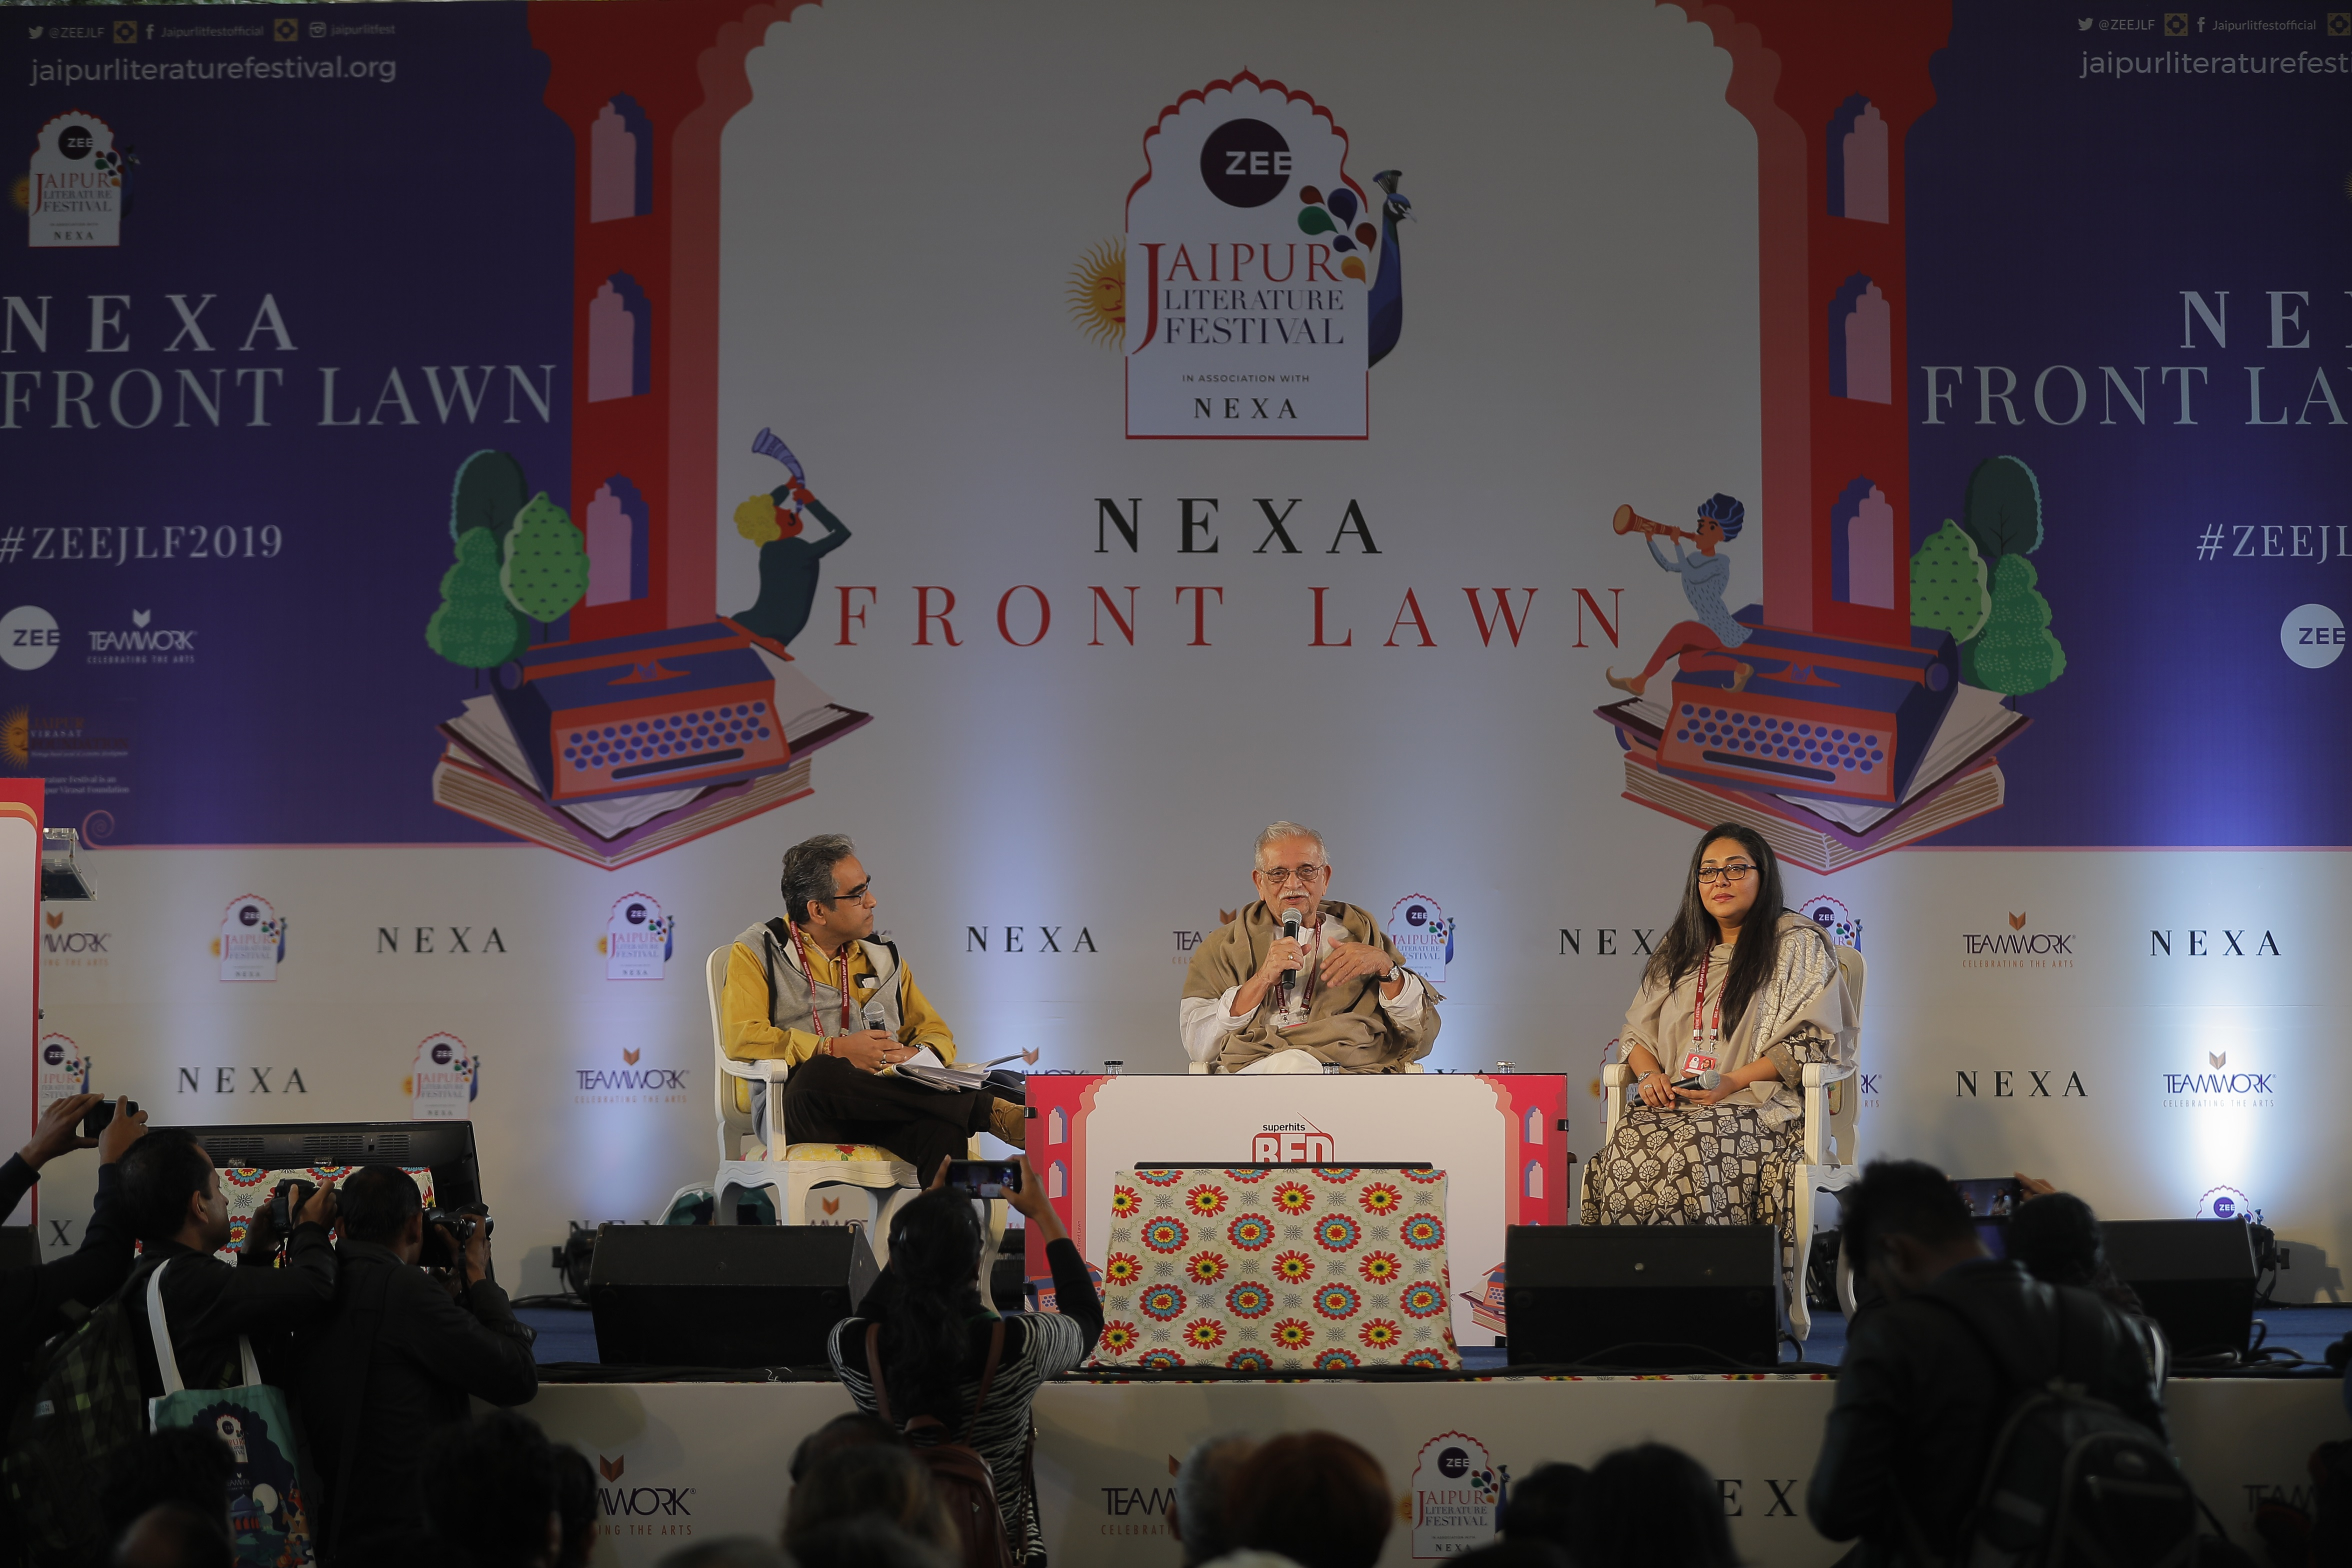 day 1_because we are a portrait of my father_gulzar and meghna gulzar in conversation with shantanu ray chaudhuri